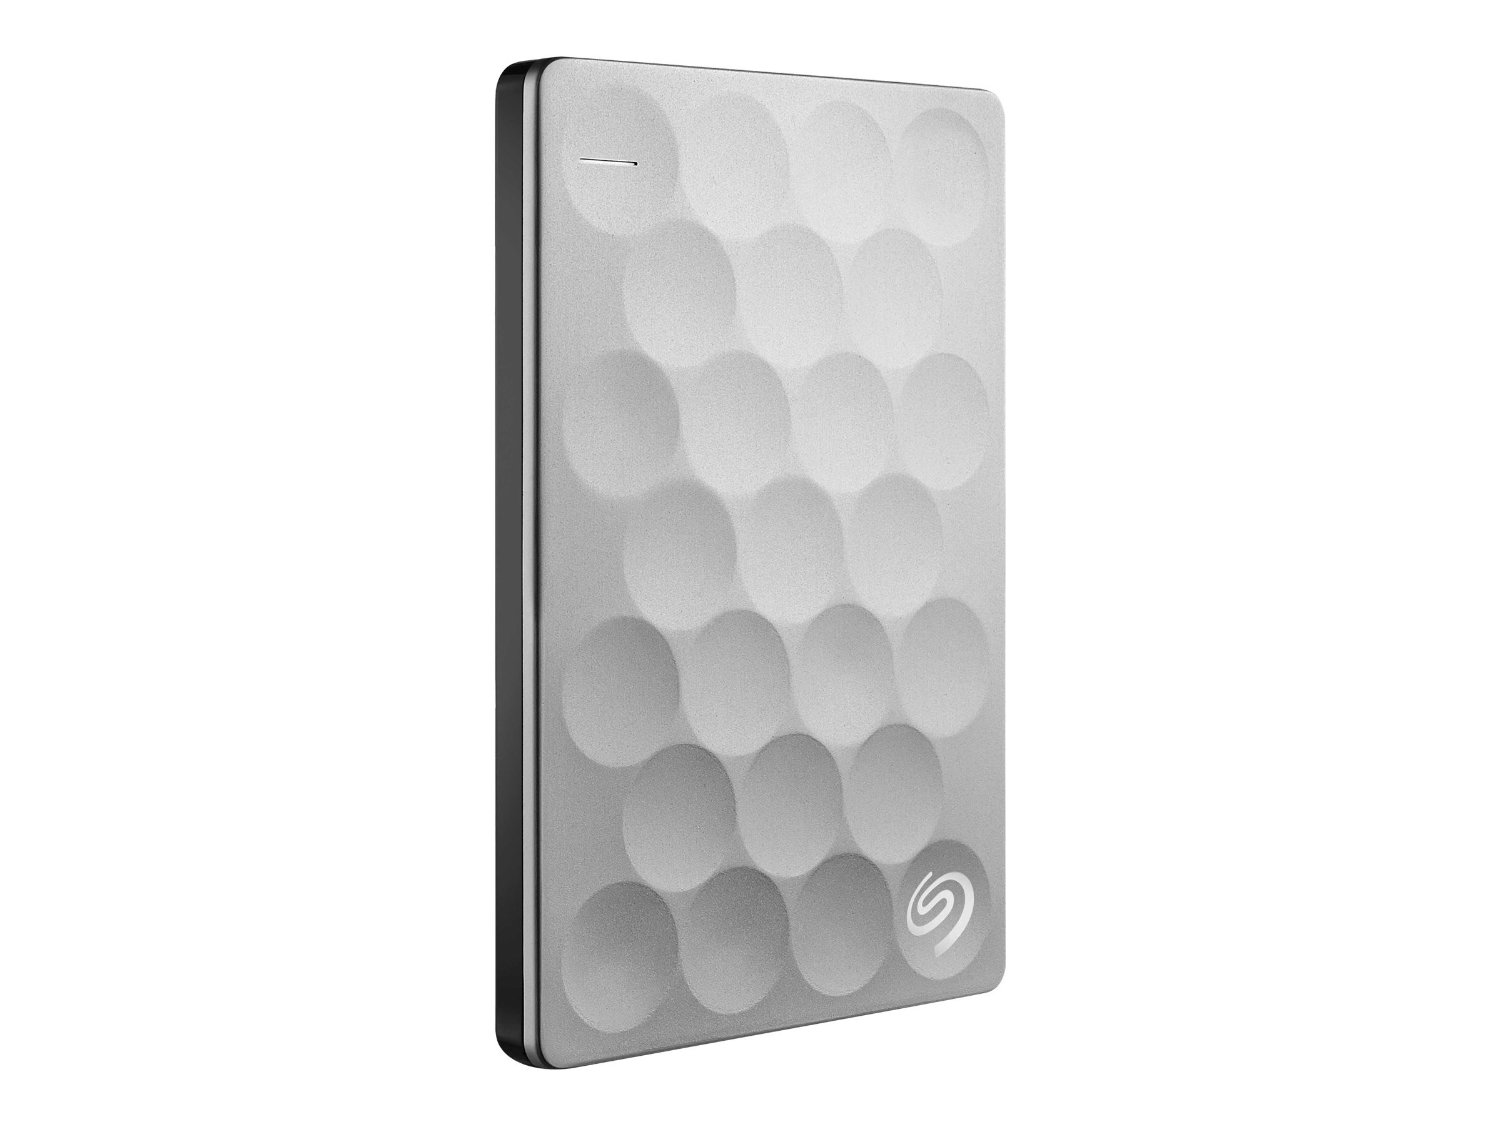 Seagate backup plus extra slim portable hard drive